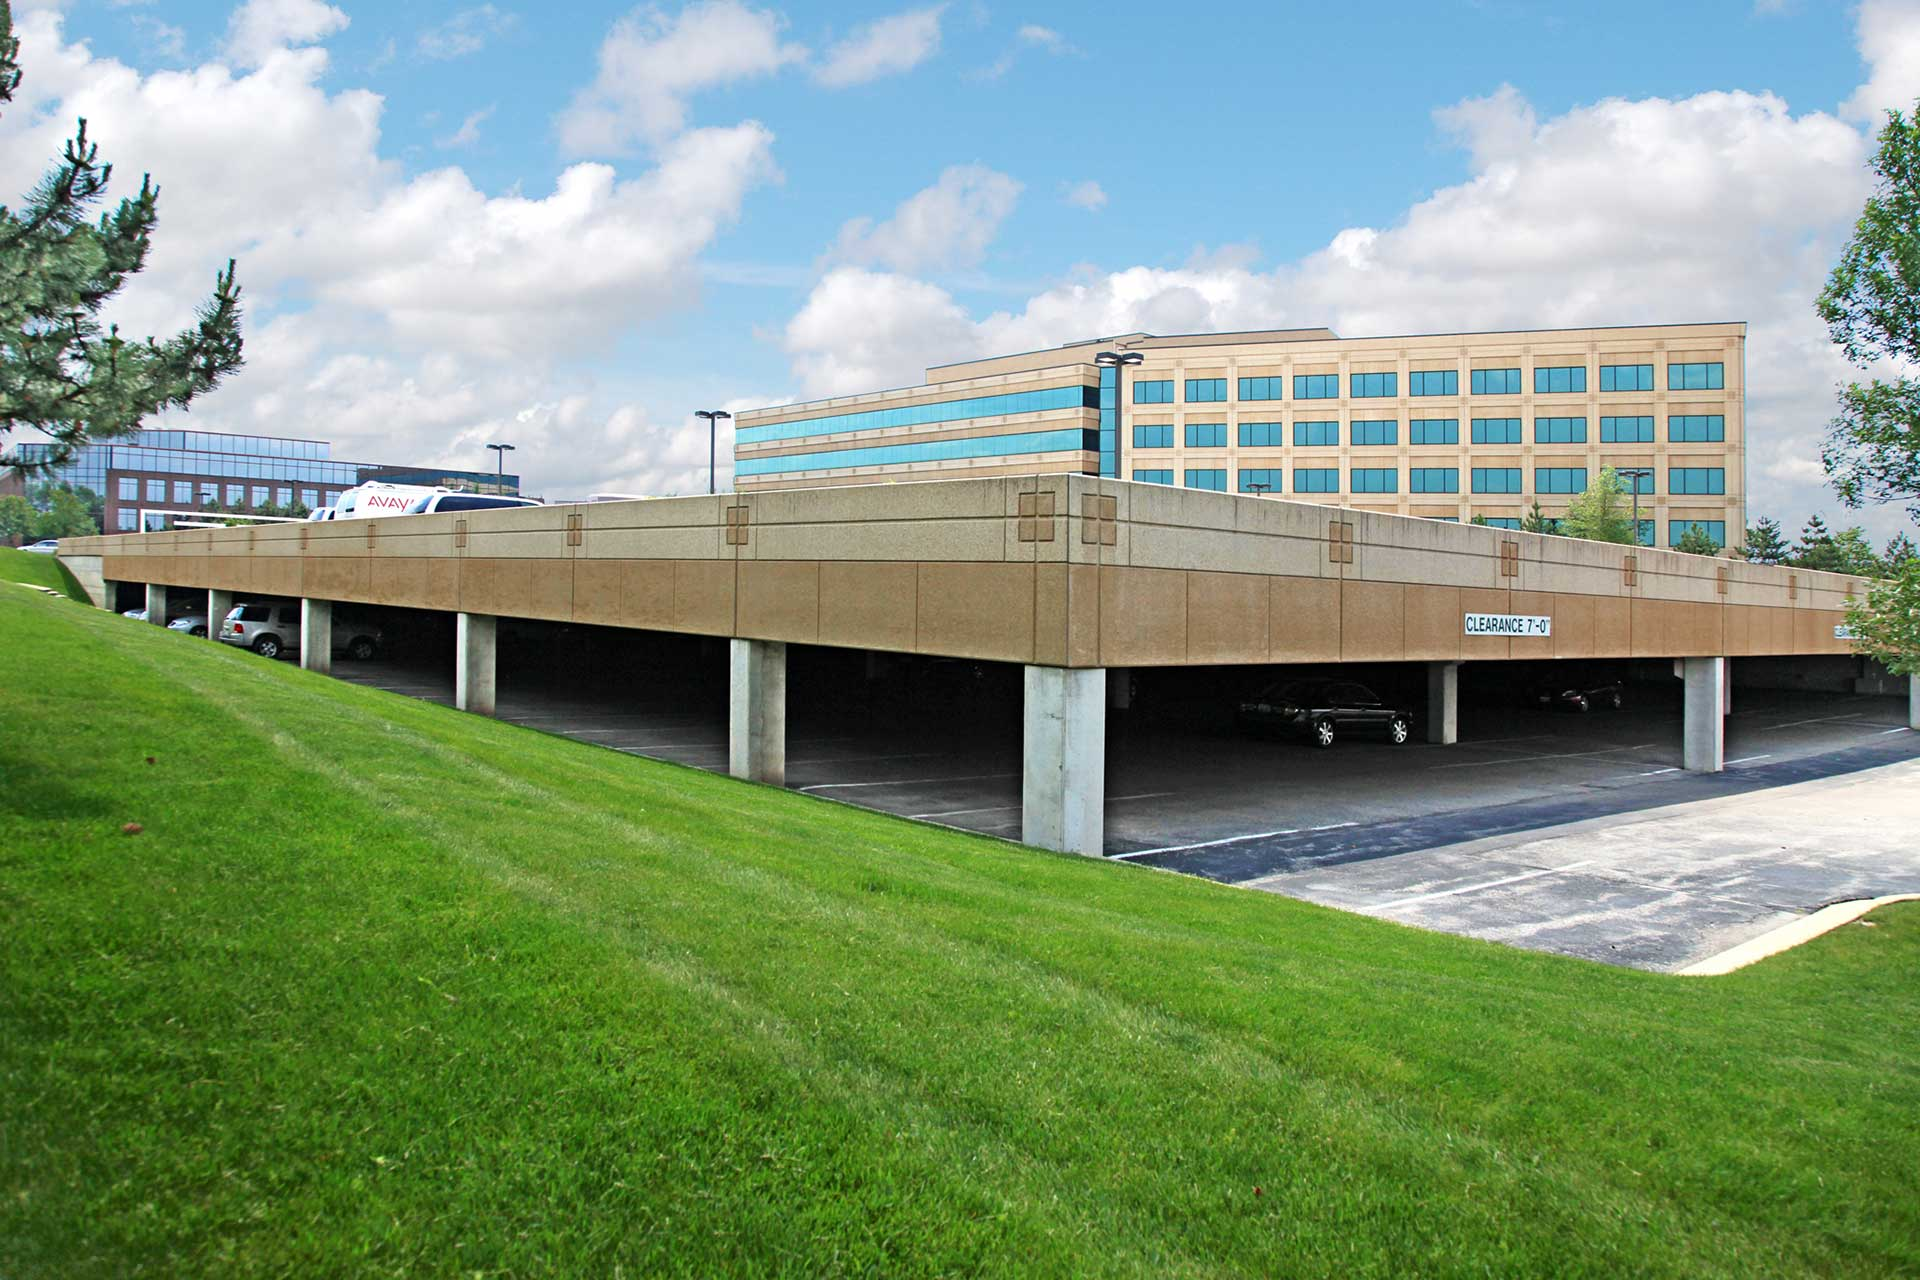 162-vehicle parking deck for 2300 Cabot Drive office building